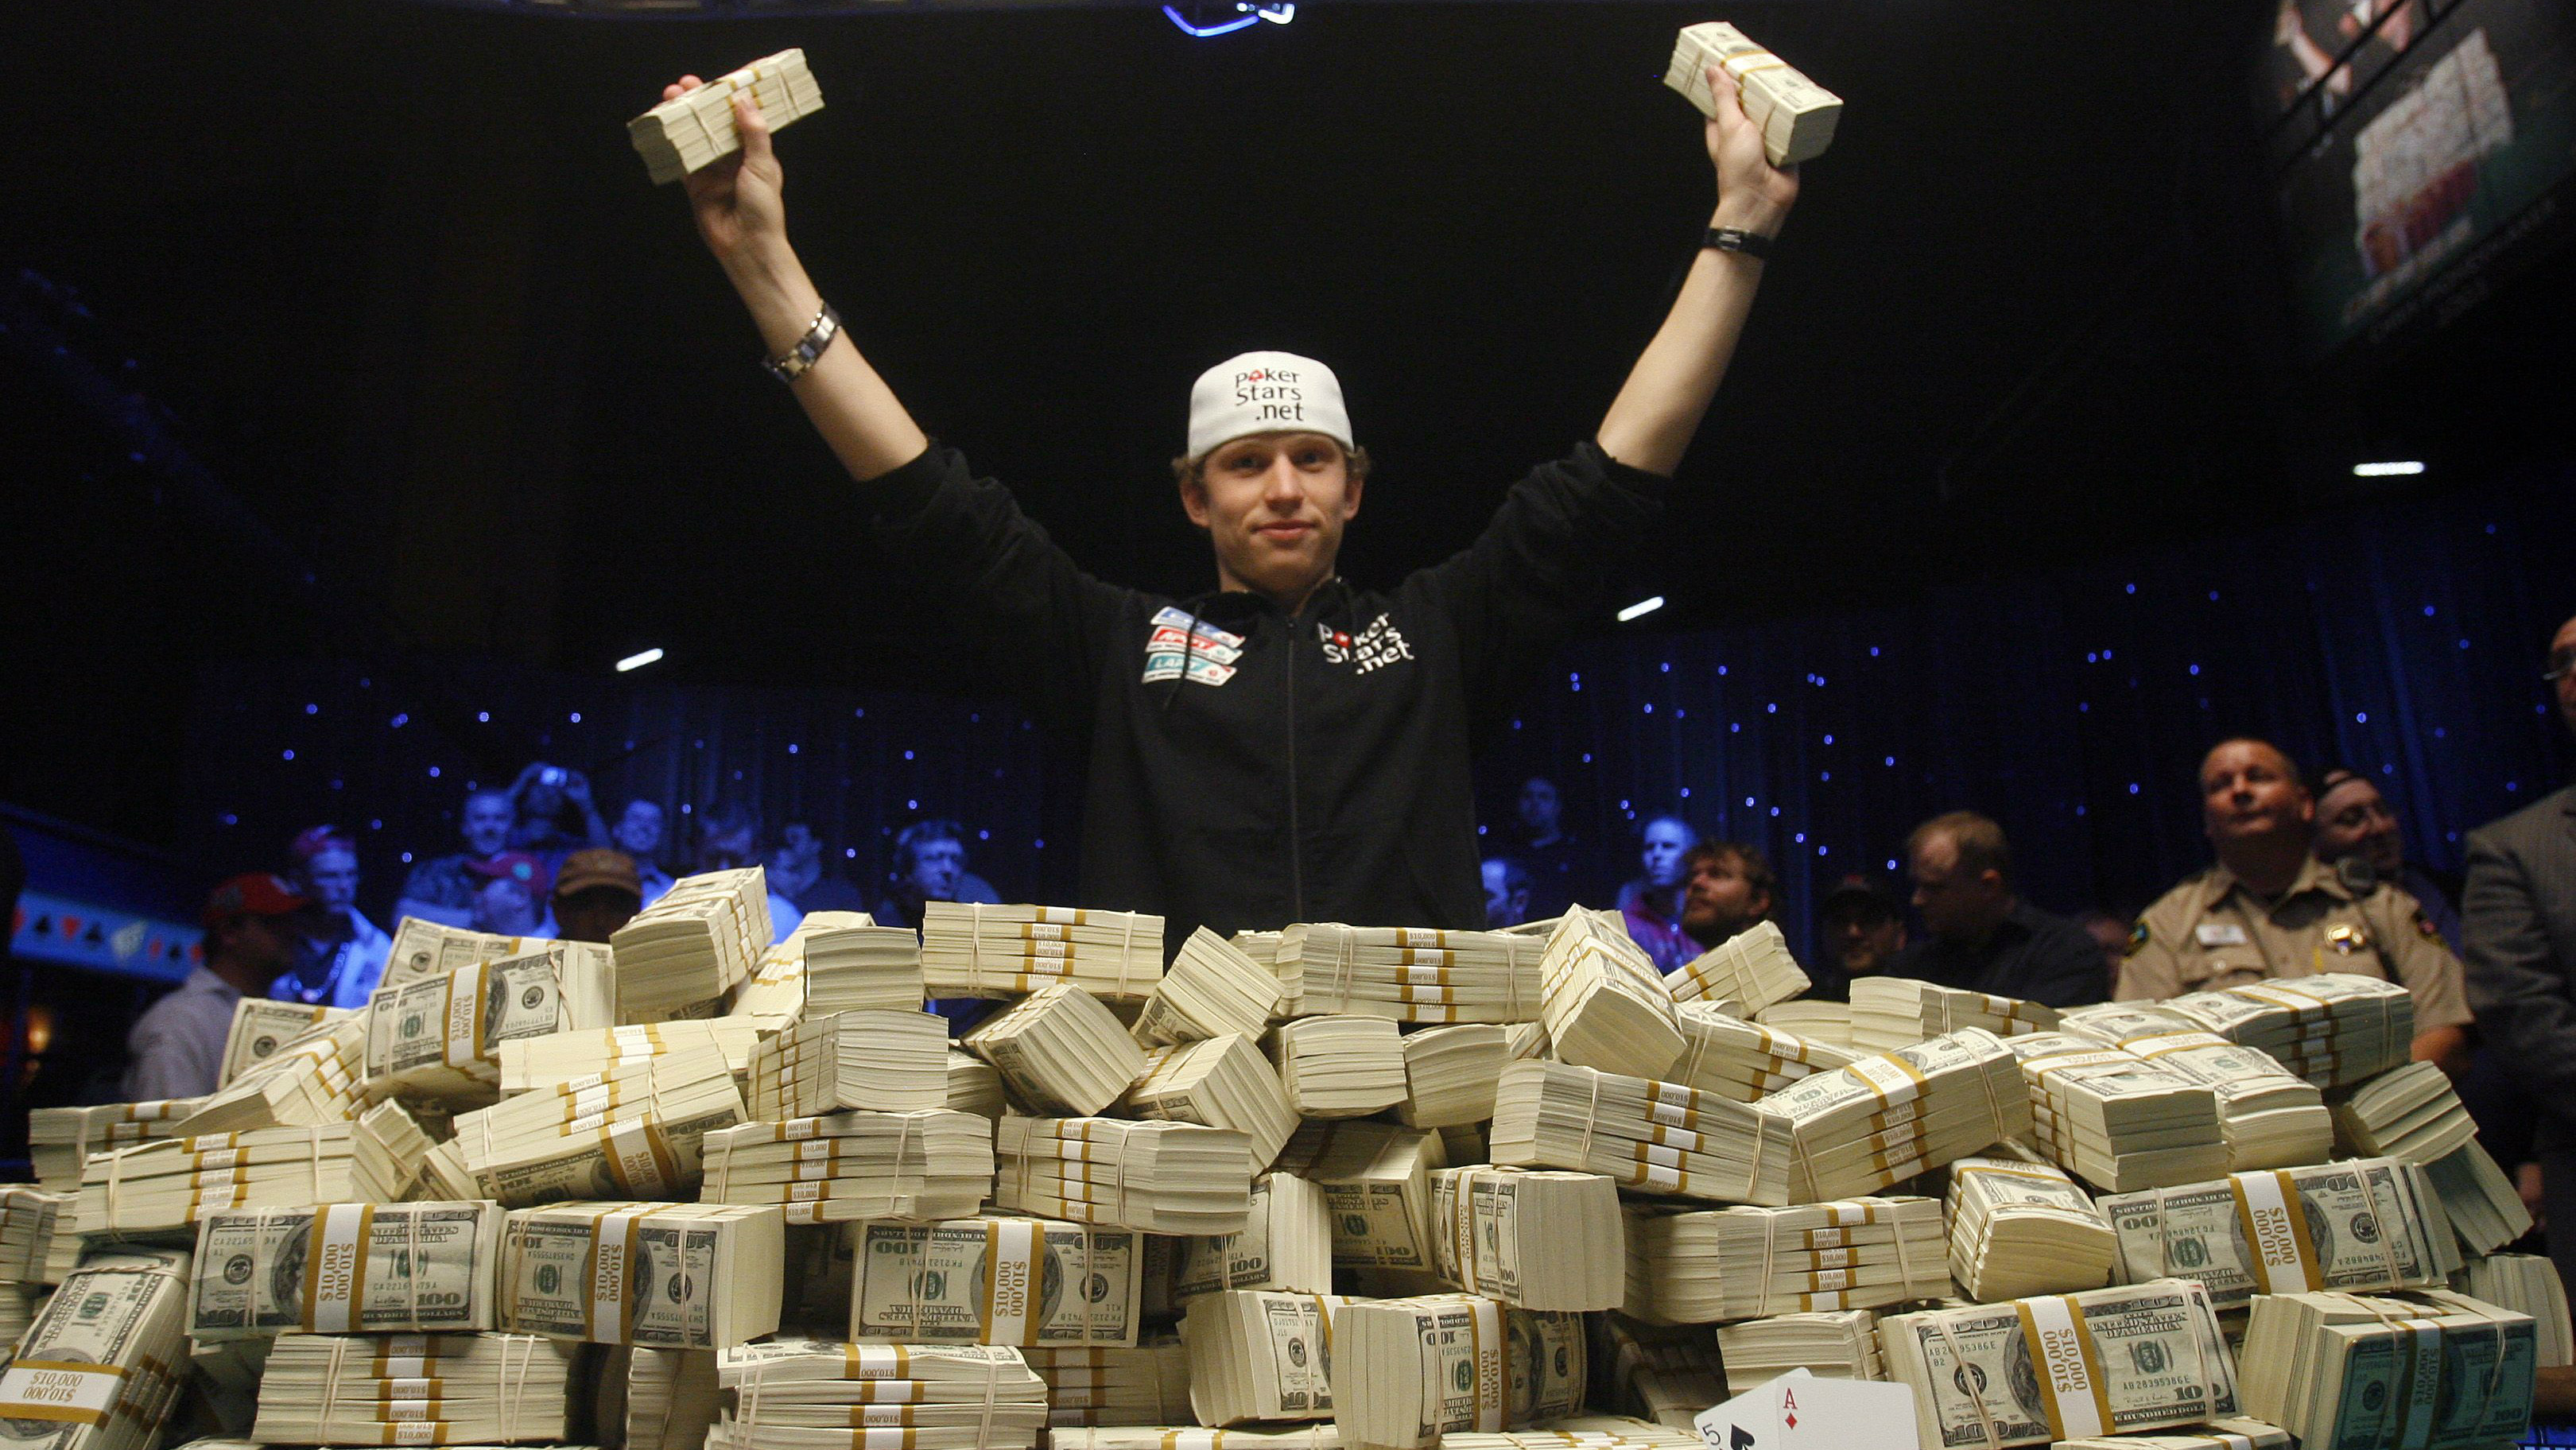 A poker player in front a pile of cash.